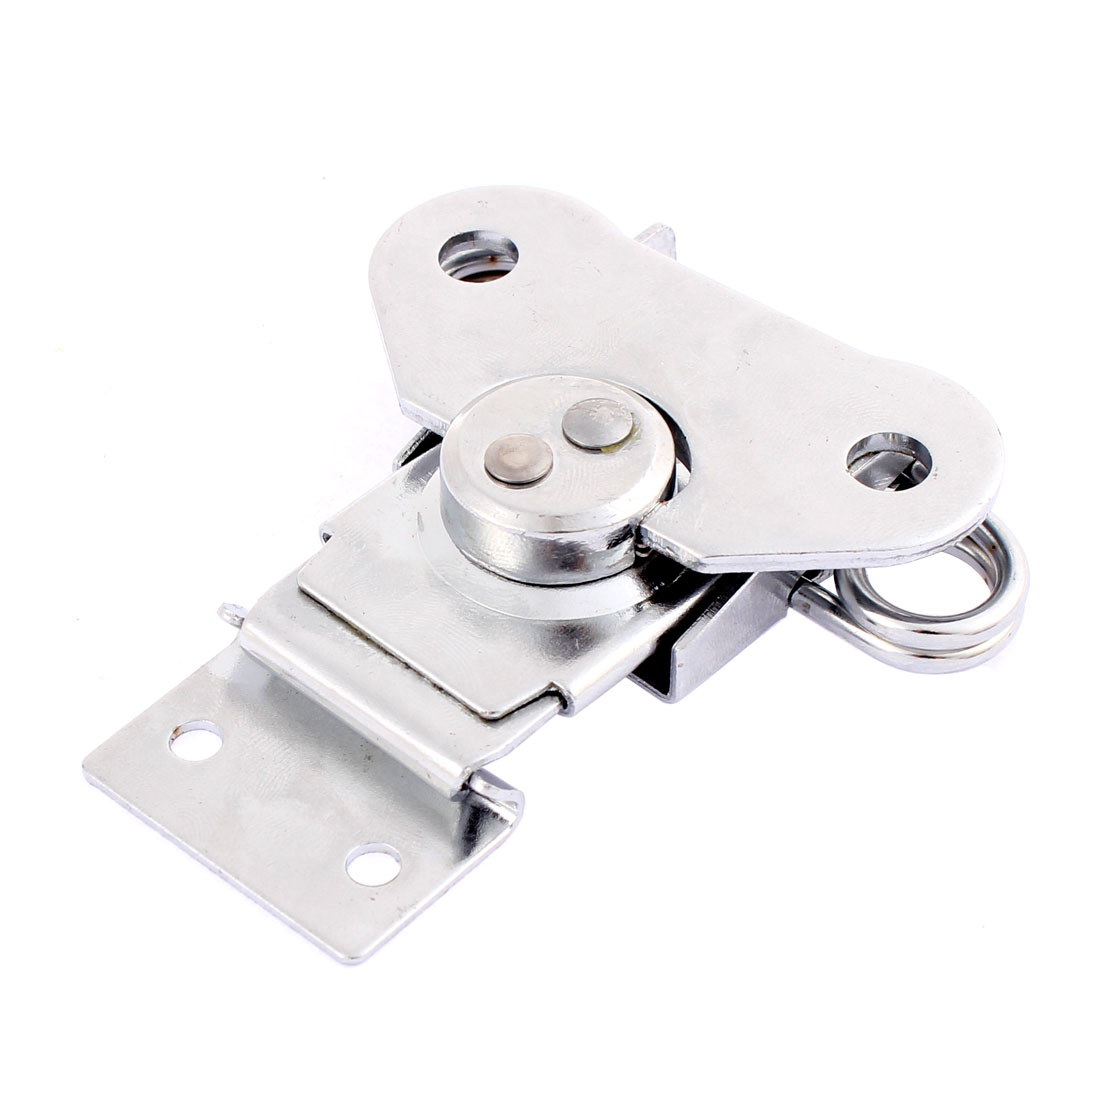 Metal Toggle Clamp Latch Hasp Silver Tone 73mm x 65mm x 15mm